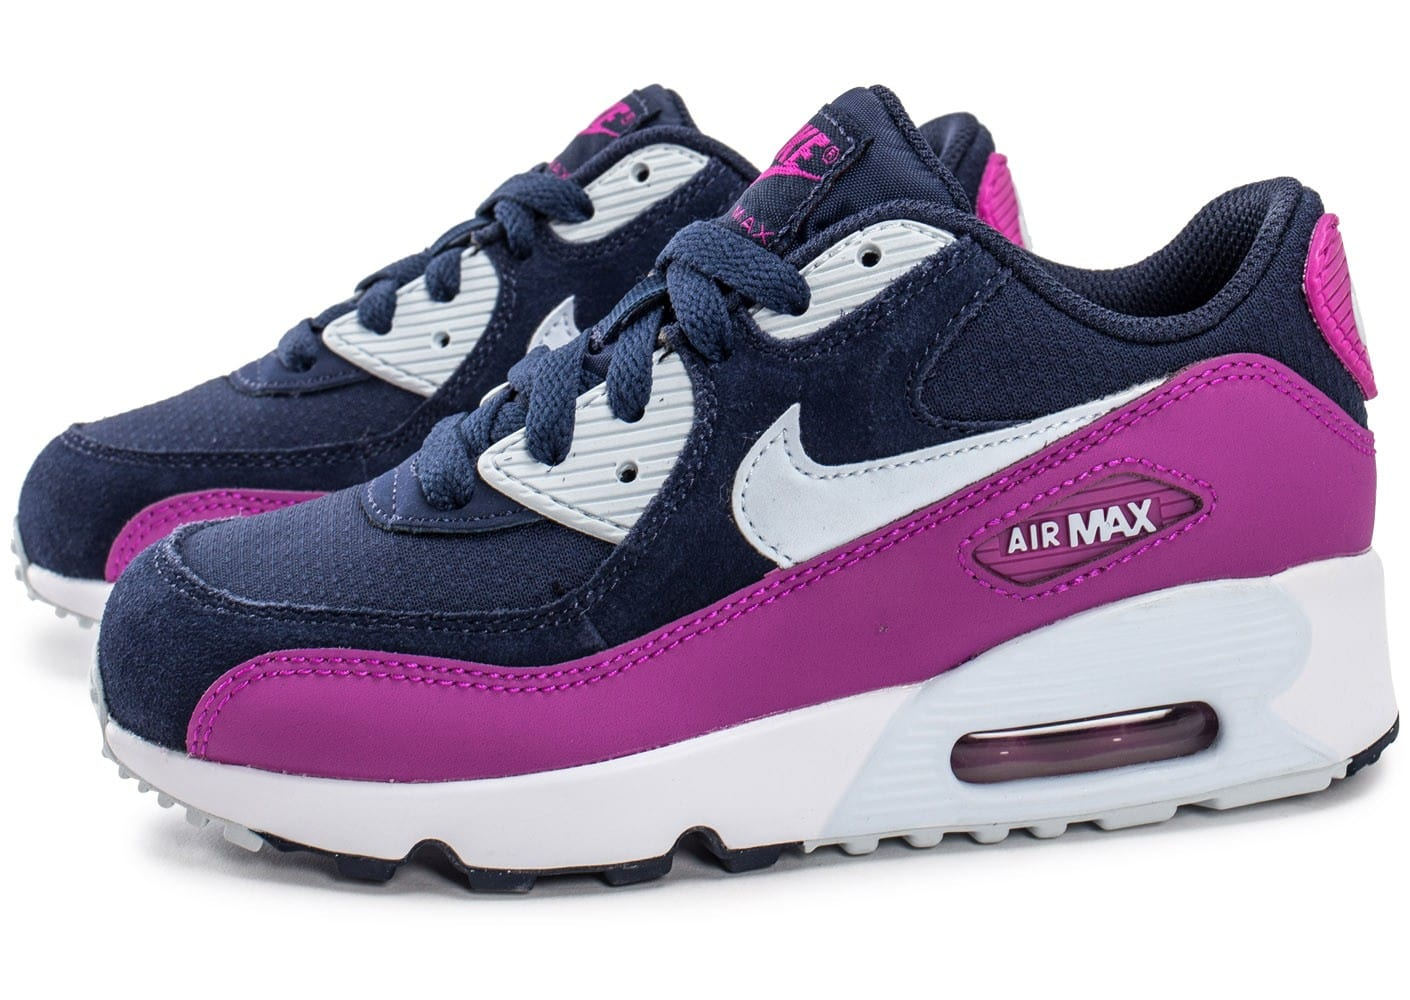 nike air max 90 enfant bleu marine chaussures 50 sur le 2e article chausport. Black Bedroom Furniture Sets. Home Design Ideas